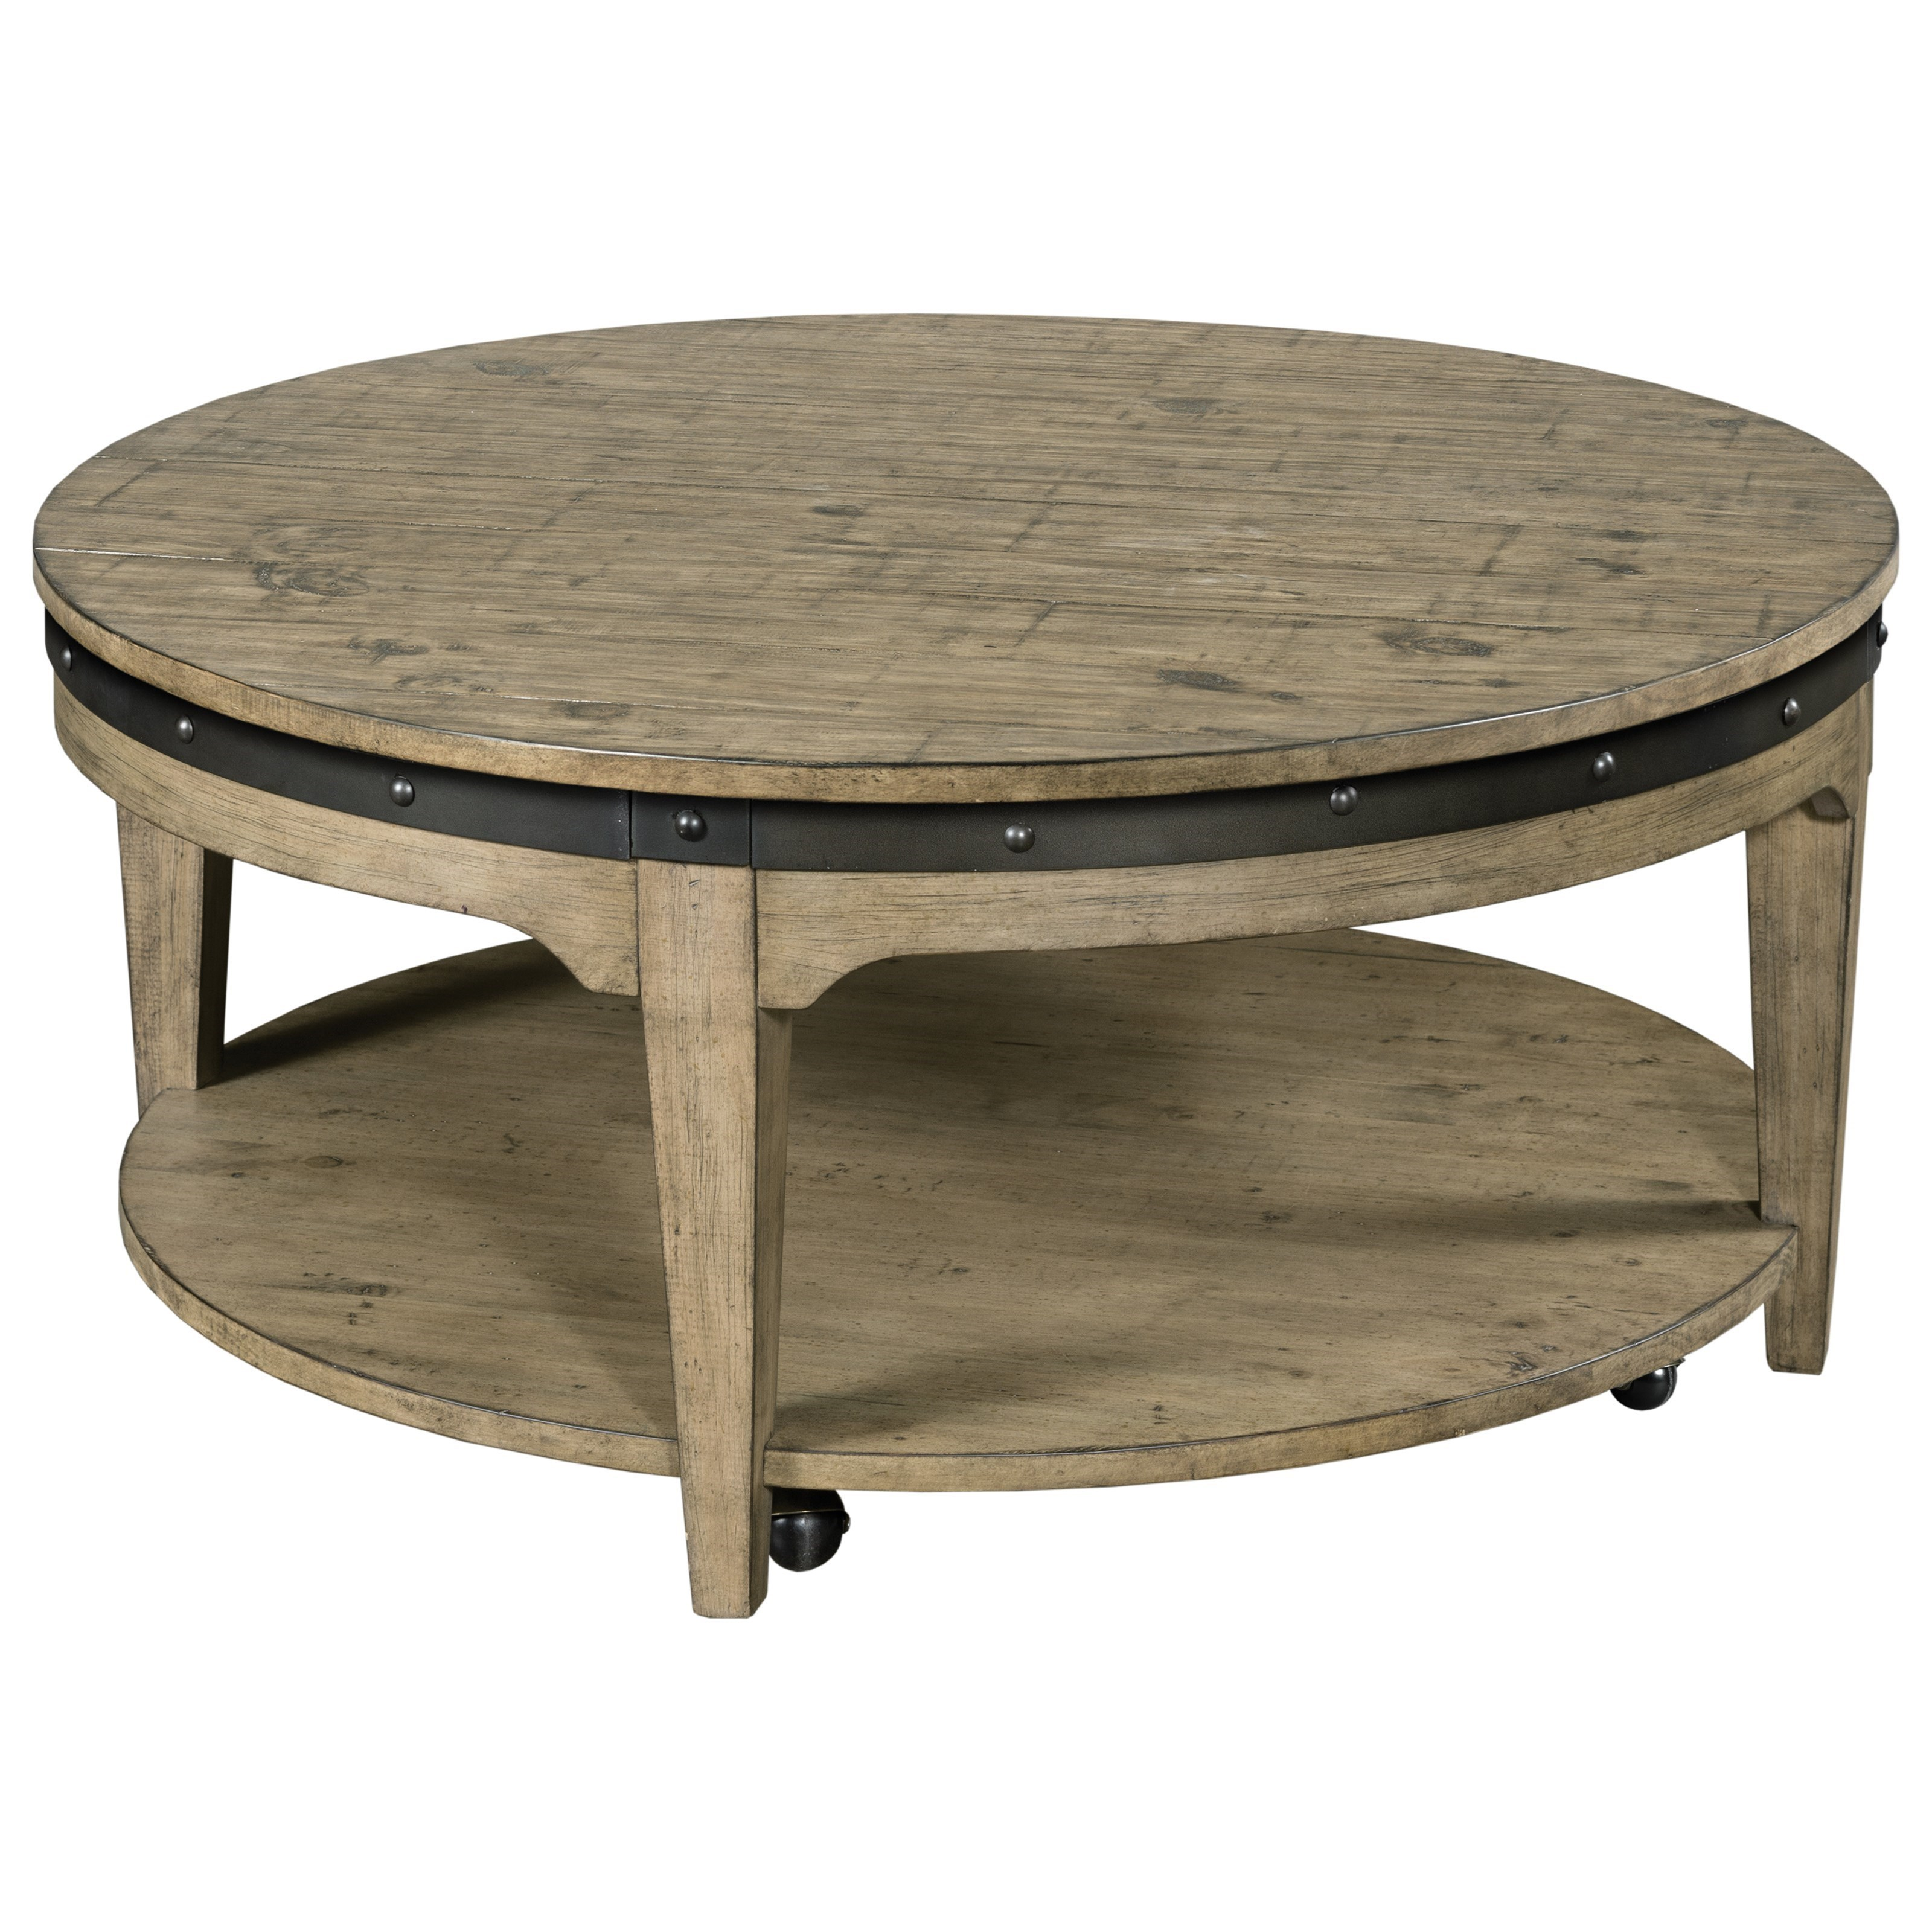 - Kincaid Furniture Plank Road Artisans Round Solid Wood Cocktail